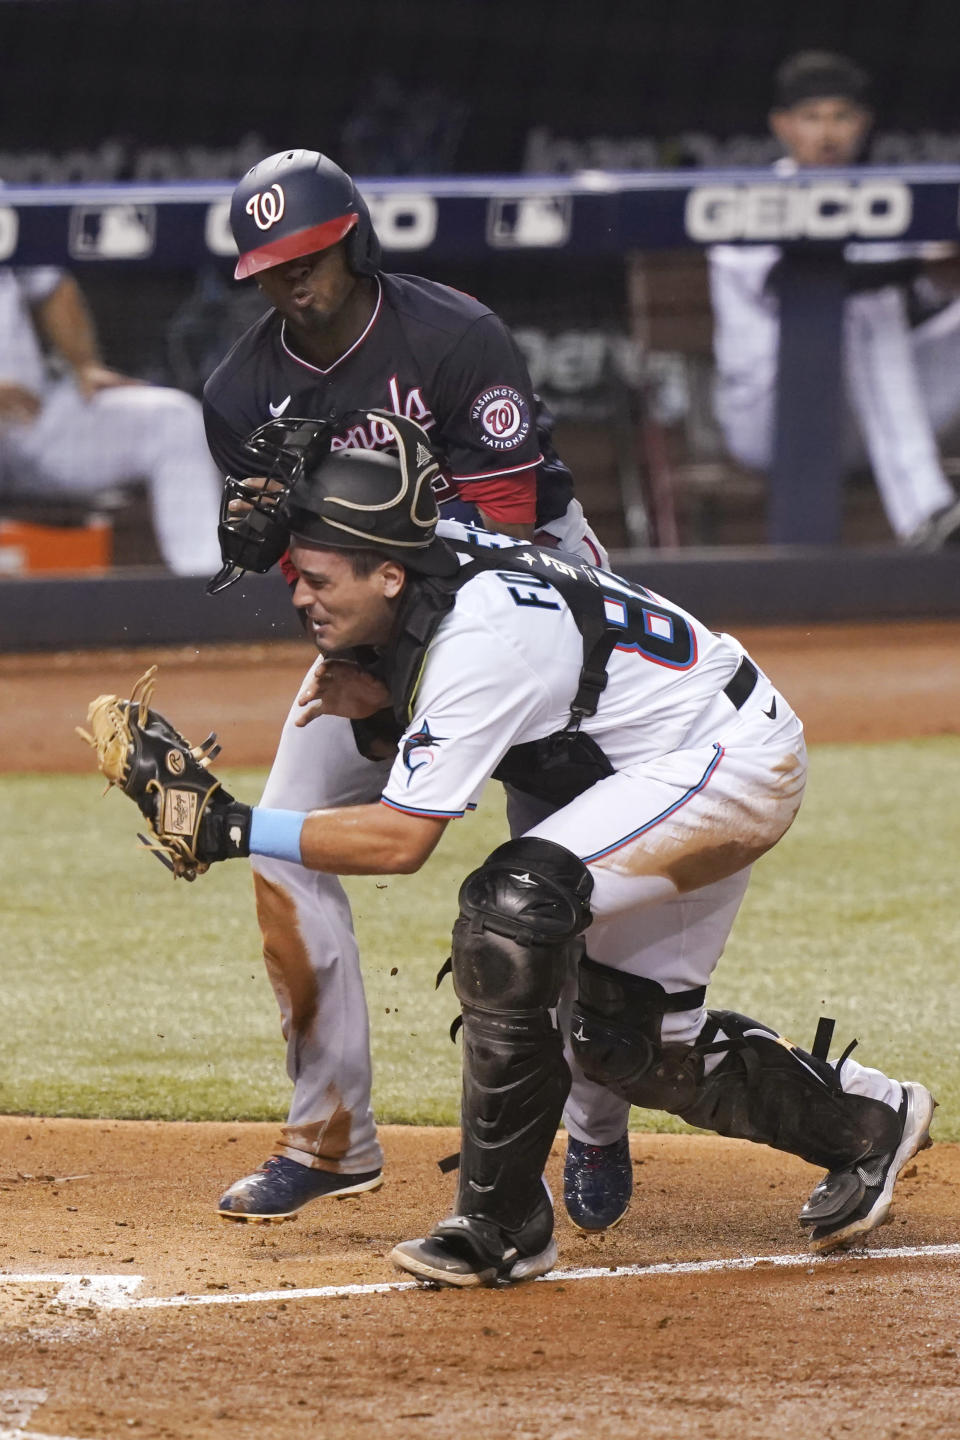 Washington Nationals' Alcides Escobar collides with Miami Marlins catcher Nick Fortes (84) during the sixth inning of a baseball game, Tuesday, Sept. 21, 2021, in Miami. Escobar scored on the play. (AP Photo/Marta Lavandier)